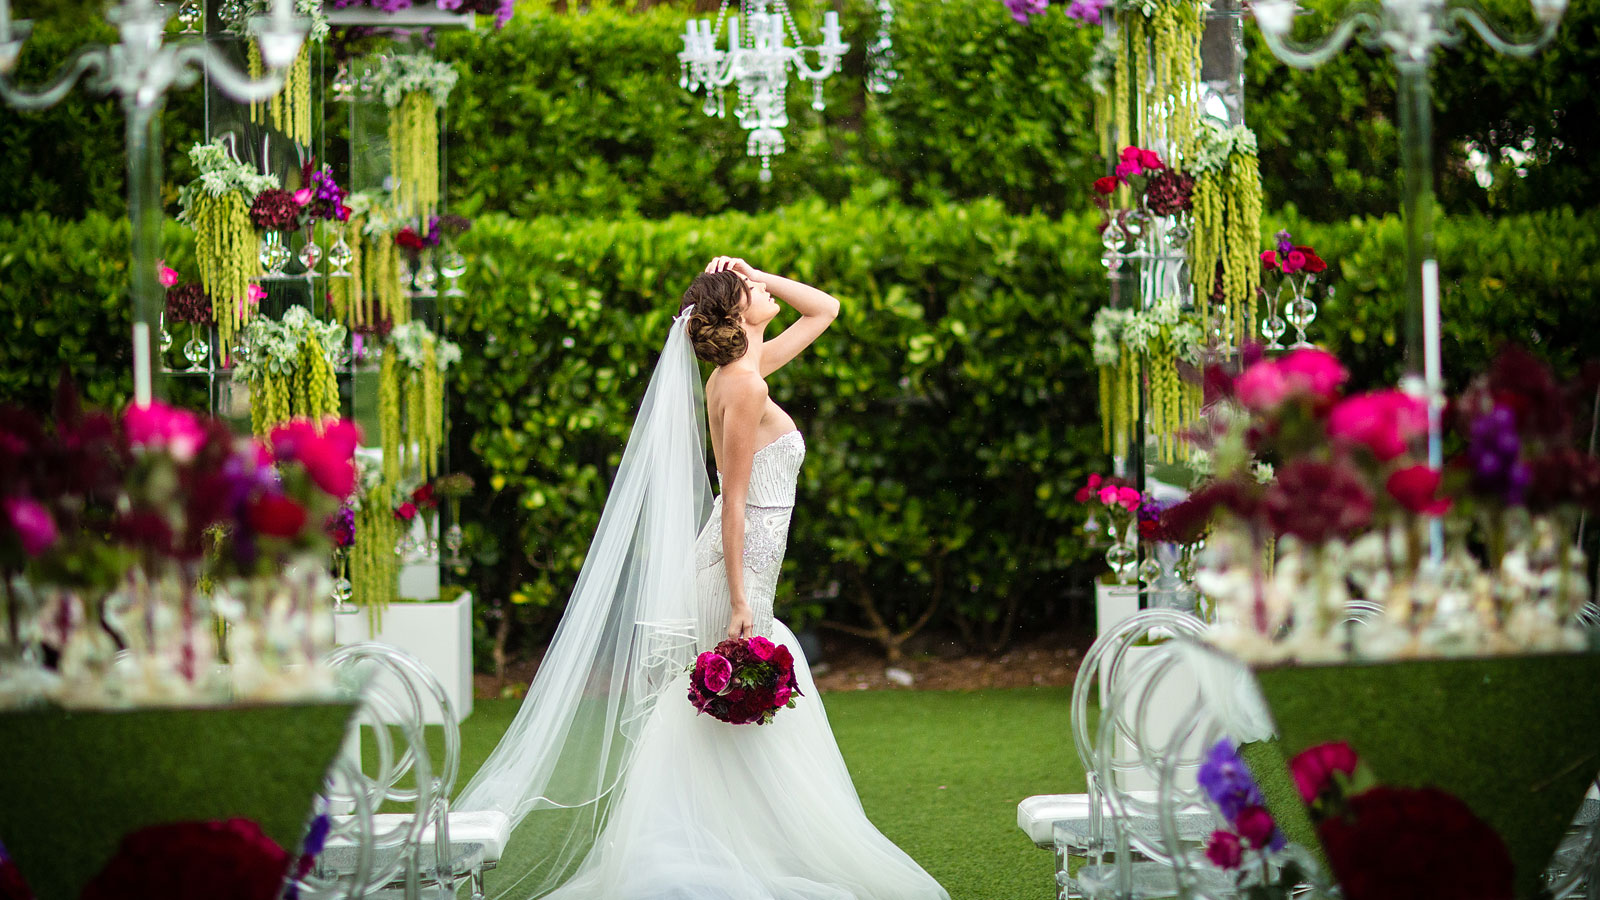 Wedding Venues in Miami | South Beach Weddings | W South Beach